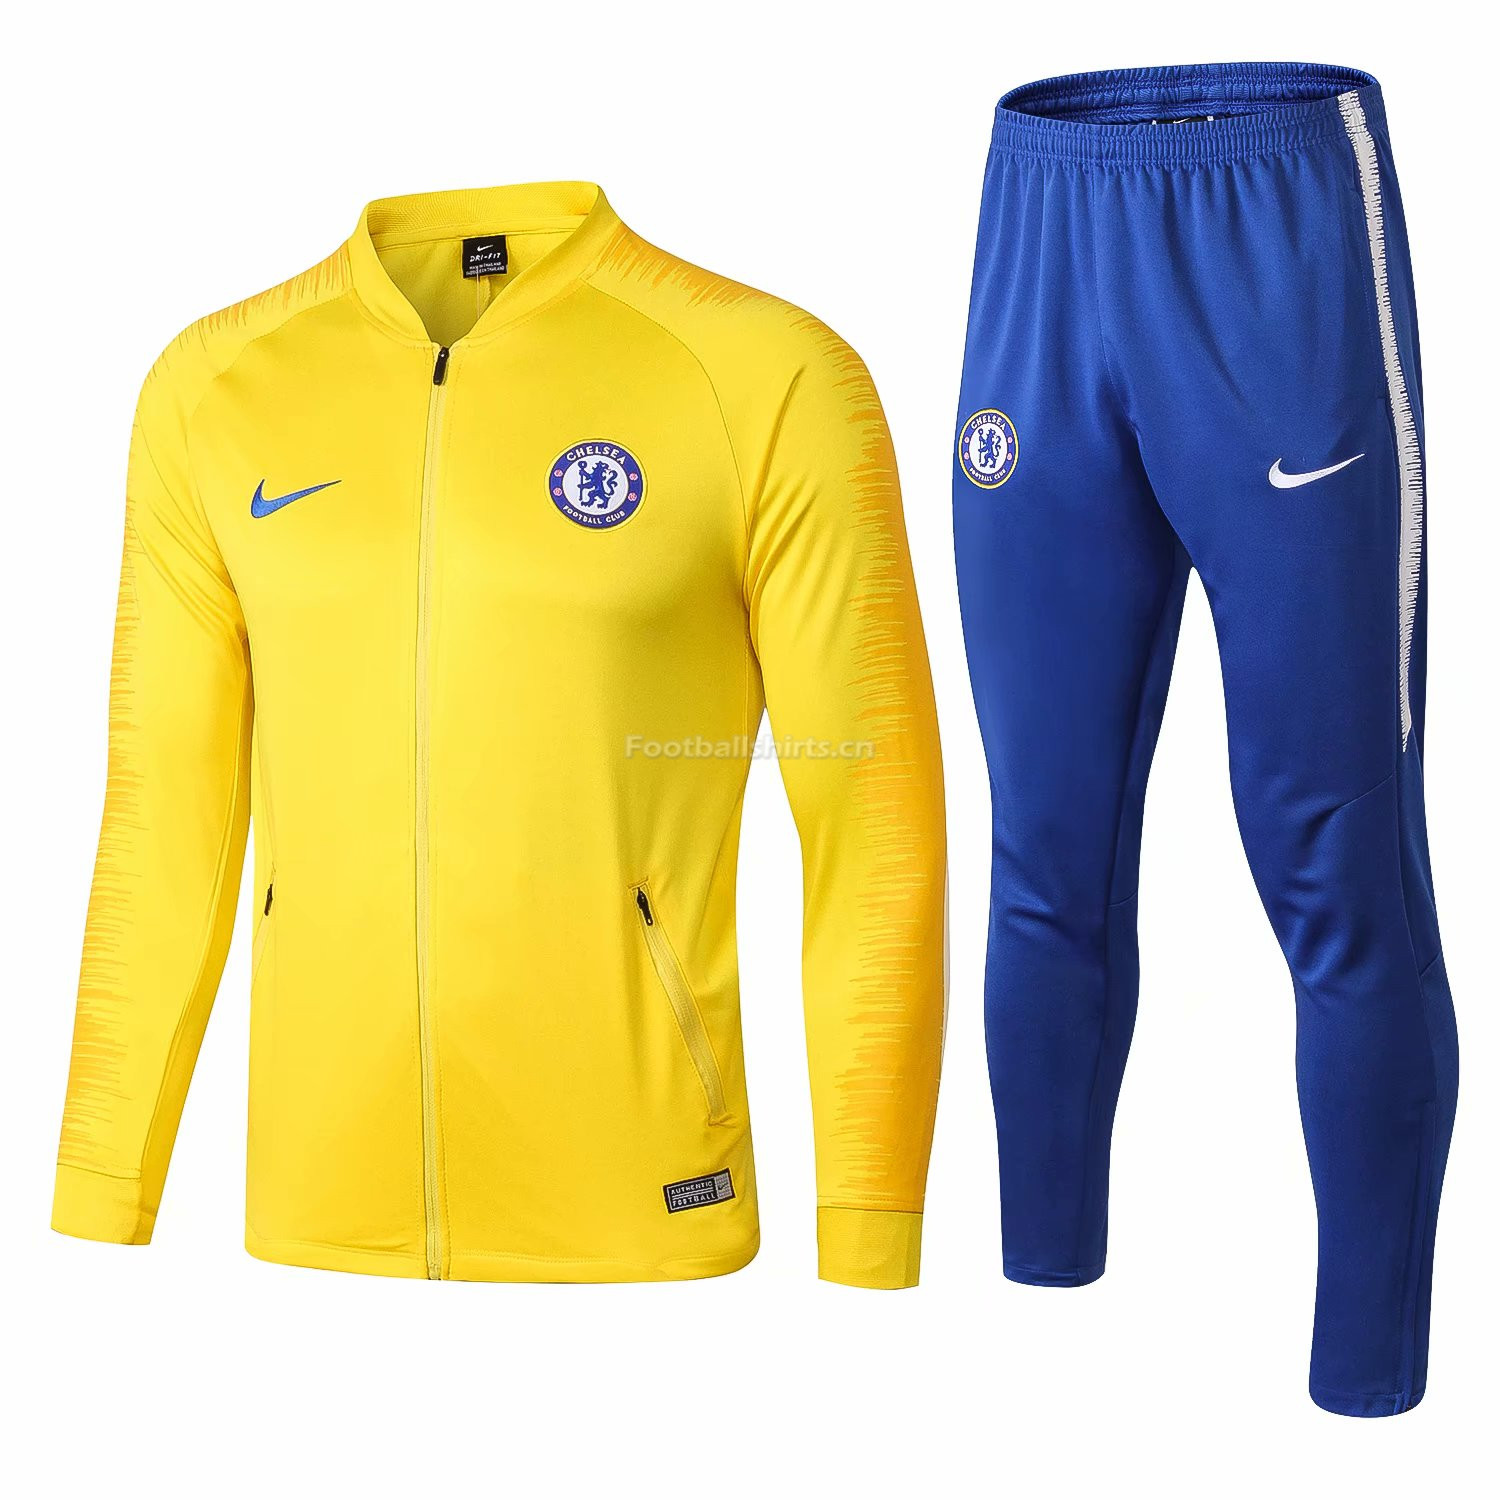 Chelsea Yellow Training Suit (Jacket+Trouser) 2018/19